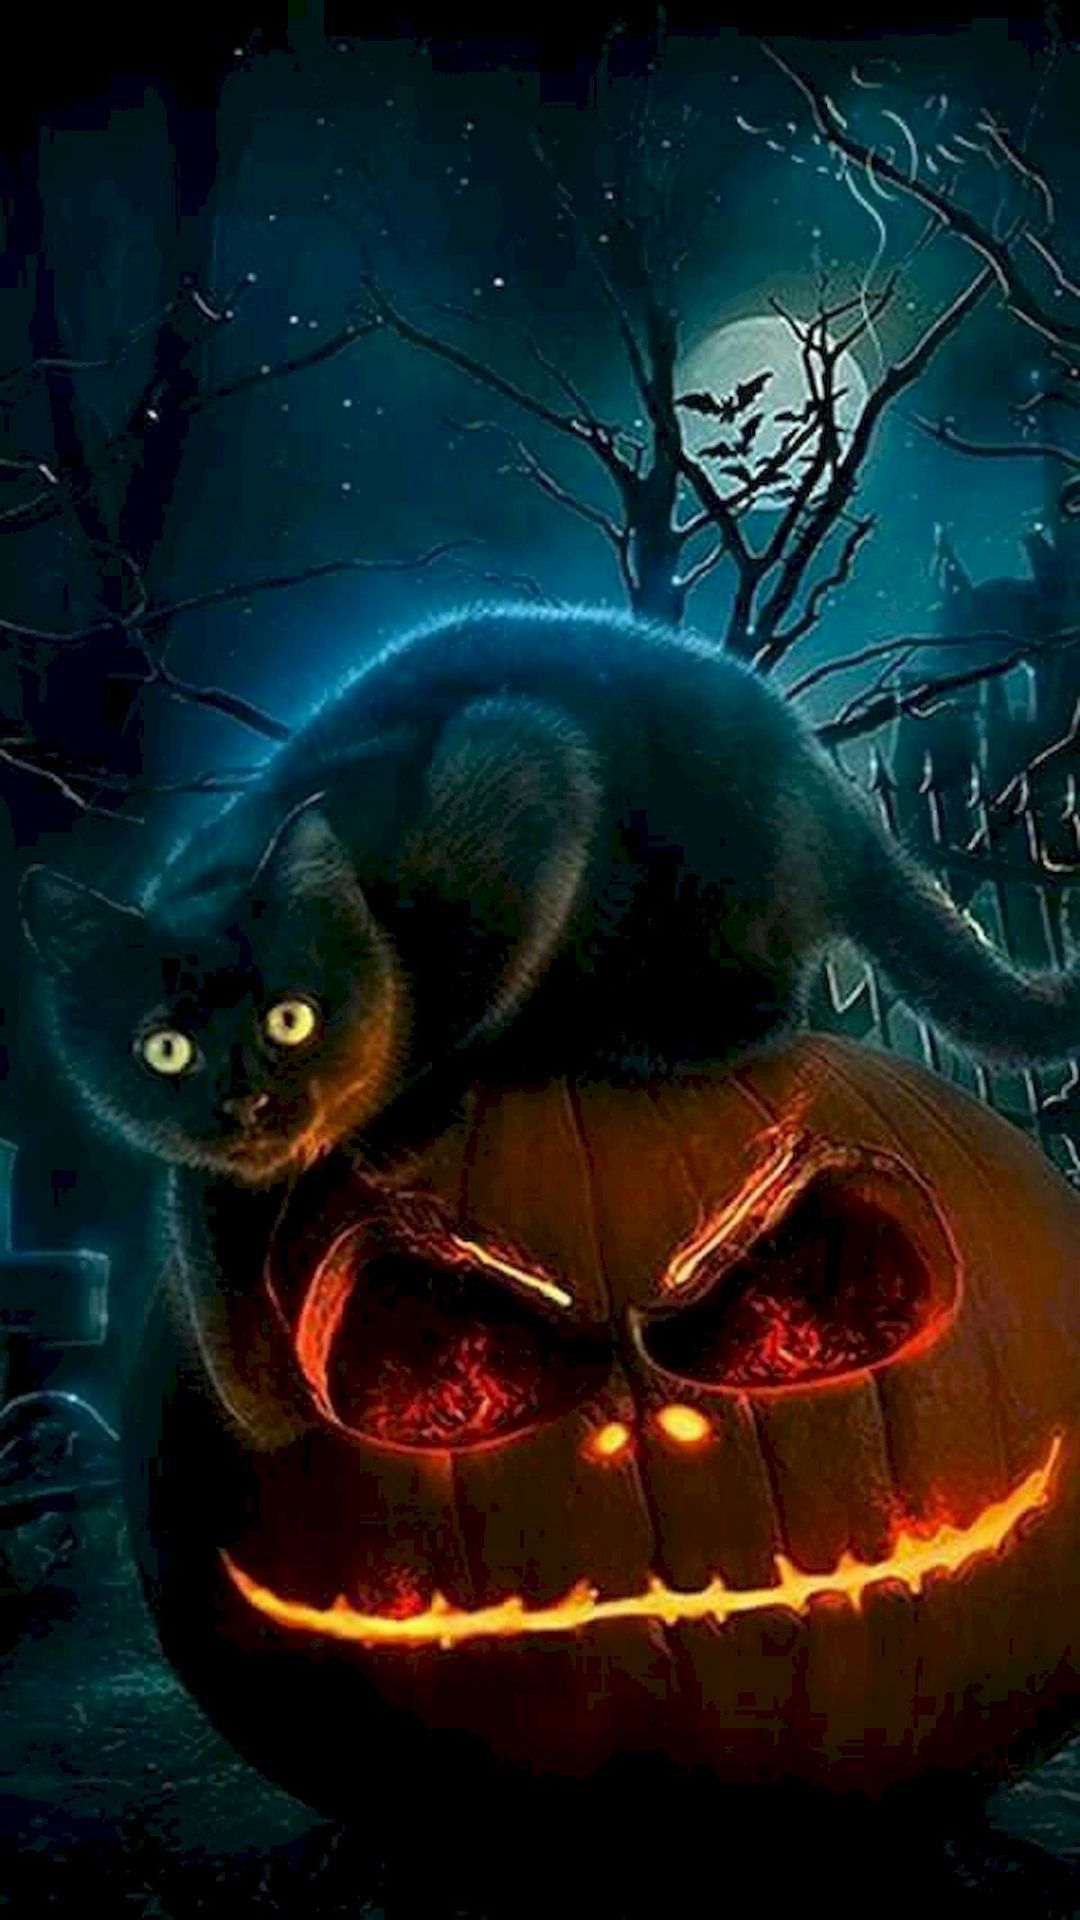 25 Spooky Halloween Wallpaper Iphone With Images Halloween Wallpaper Halloween Painting Halloween Cat